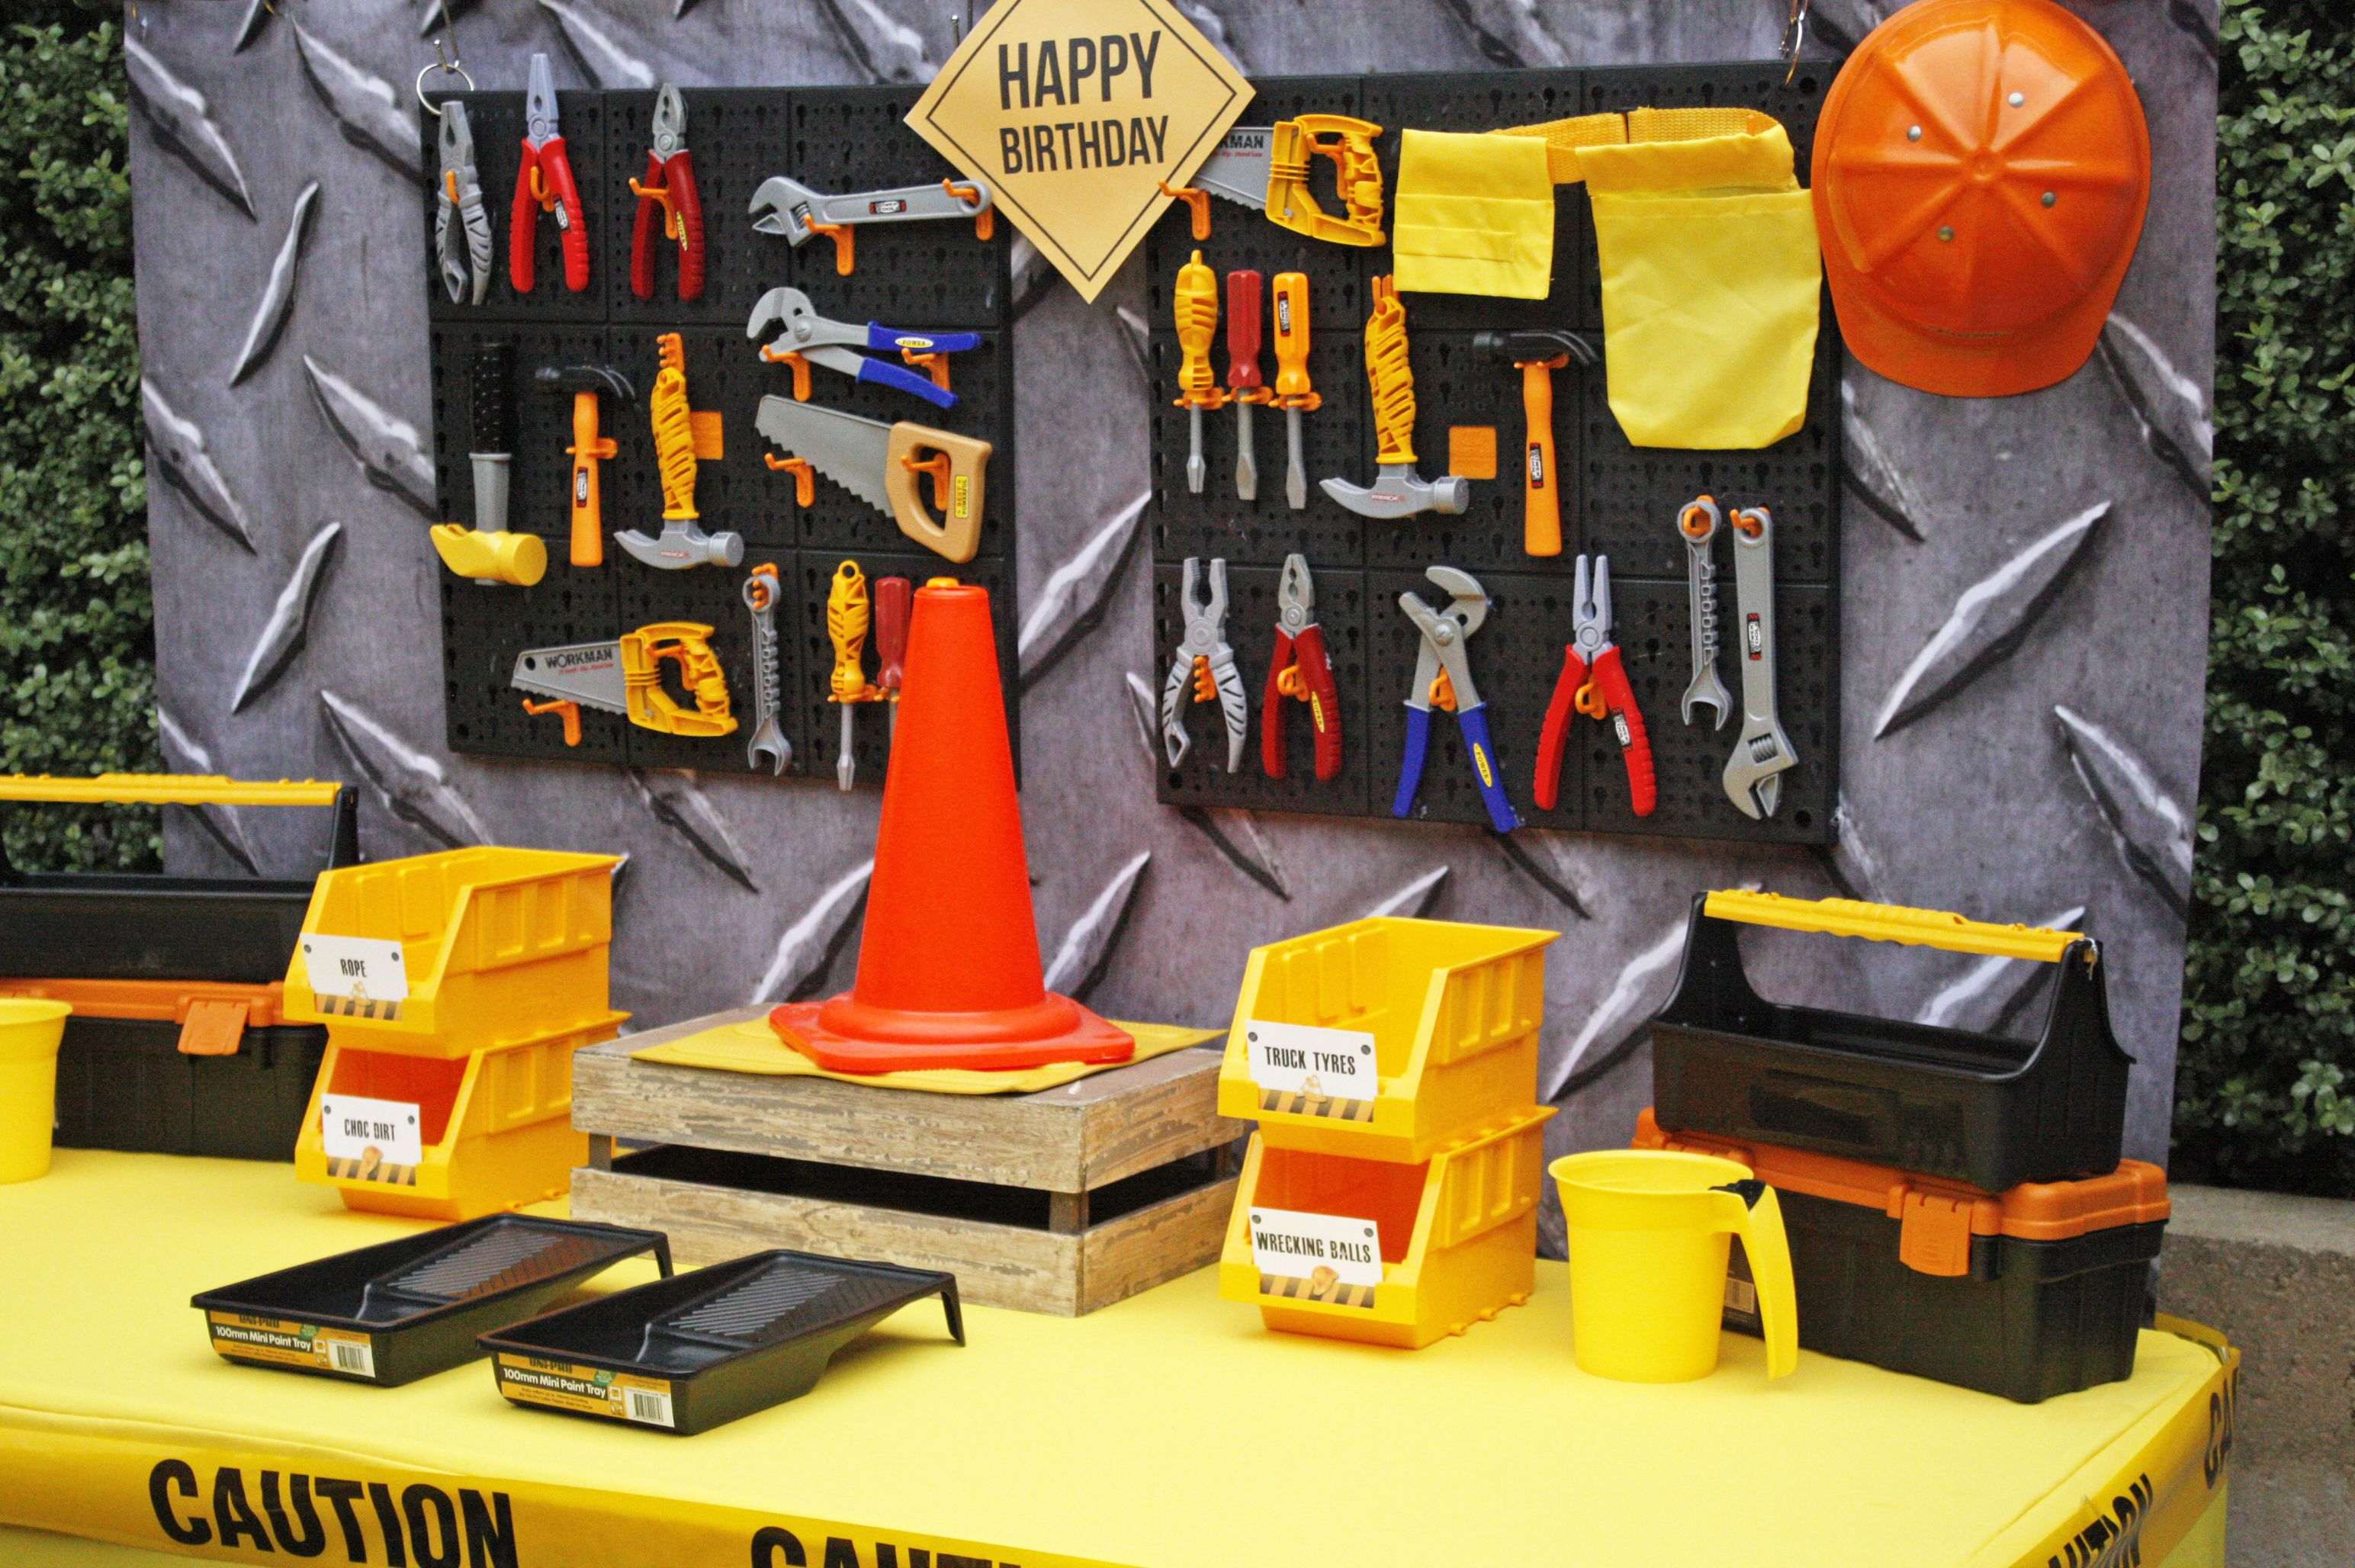 Construction Birthday Party Decorations Peg Board And Tools Decoration For Construction Party Backdrop